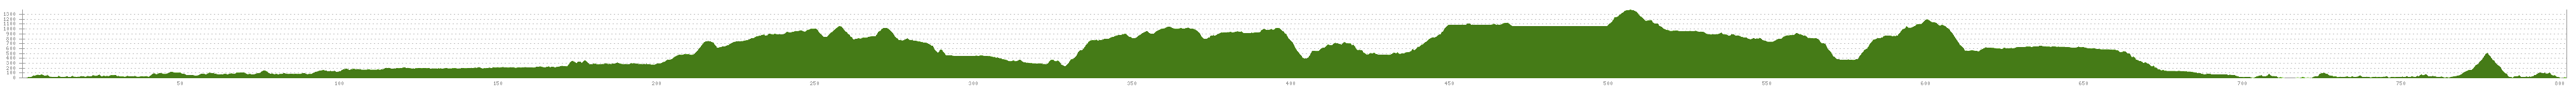 Elevation profile Cycle Route Numedalsruta - Larvik-Romsdalen